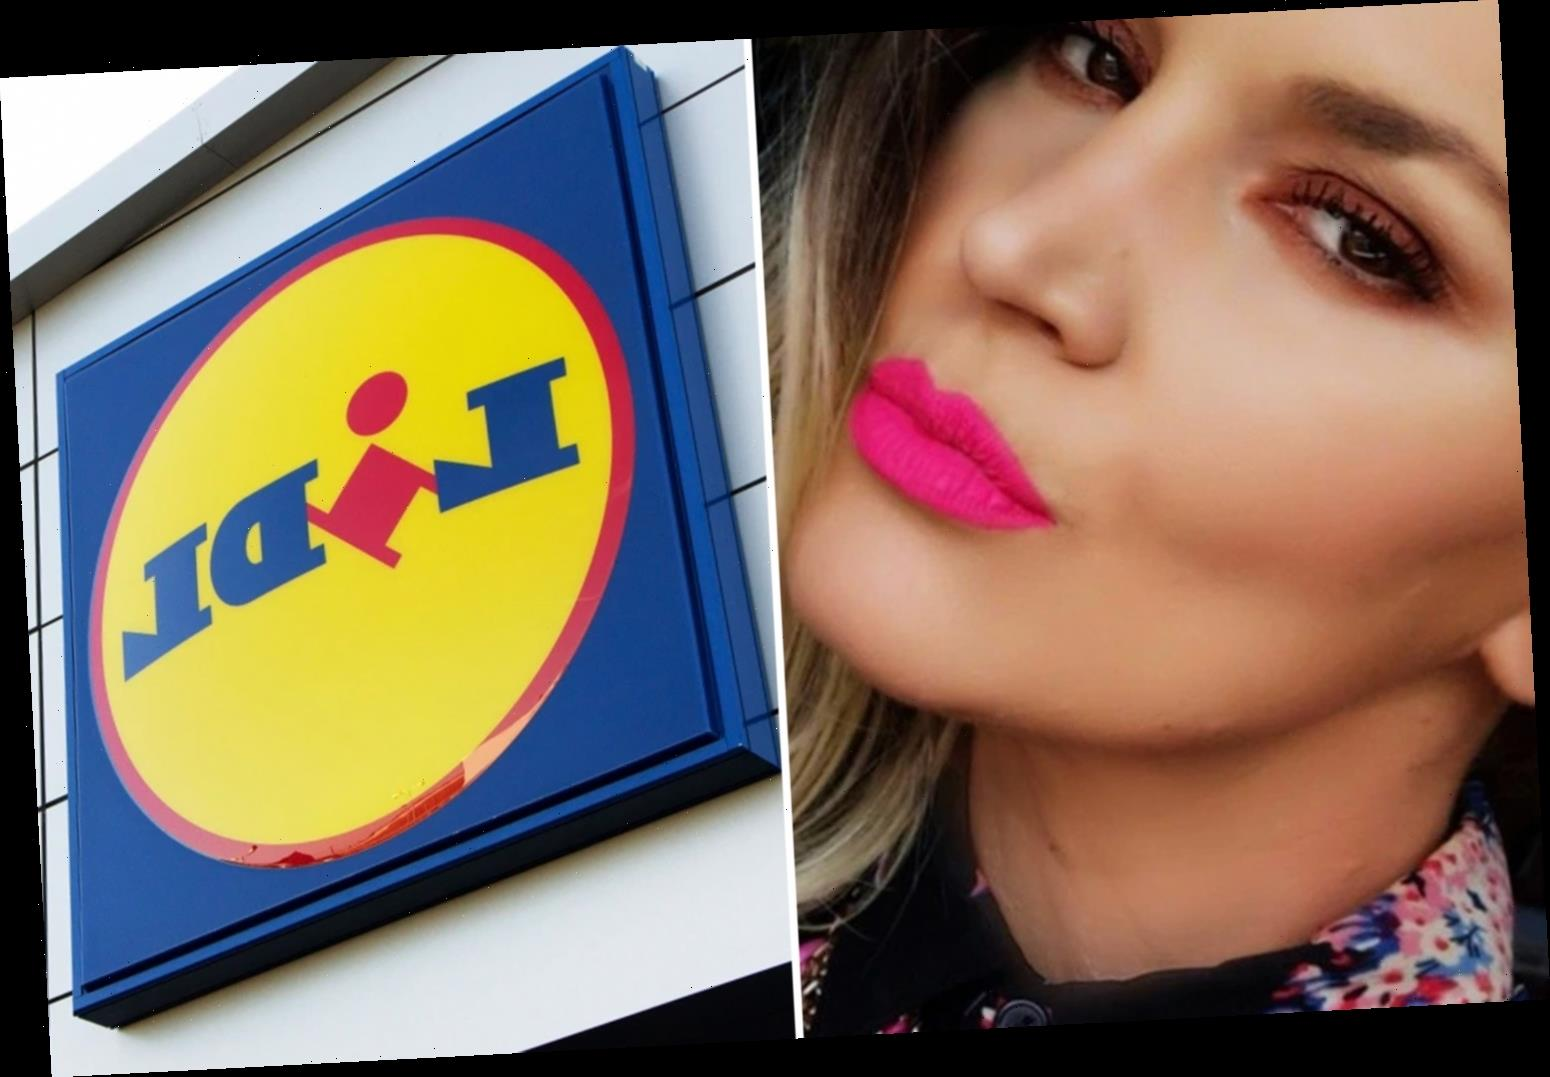 Mum furious after Lidl worker 'takes her into back room and tells her off for complaining about store on Facebook'